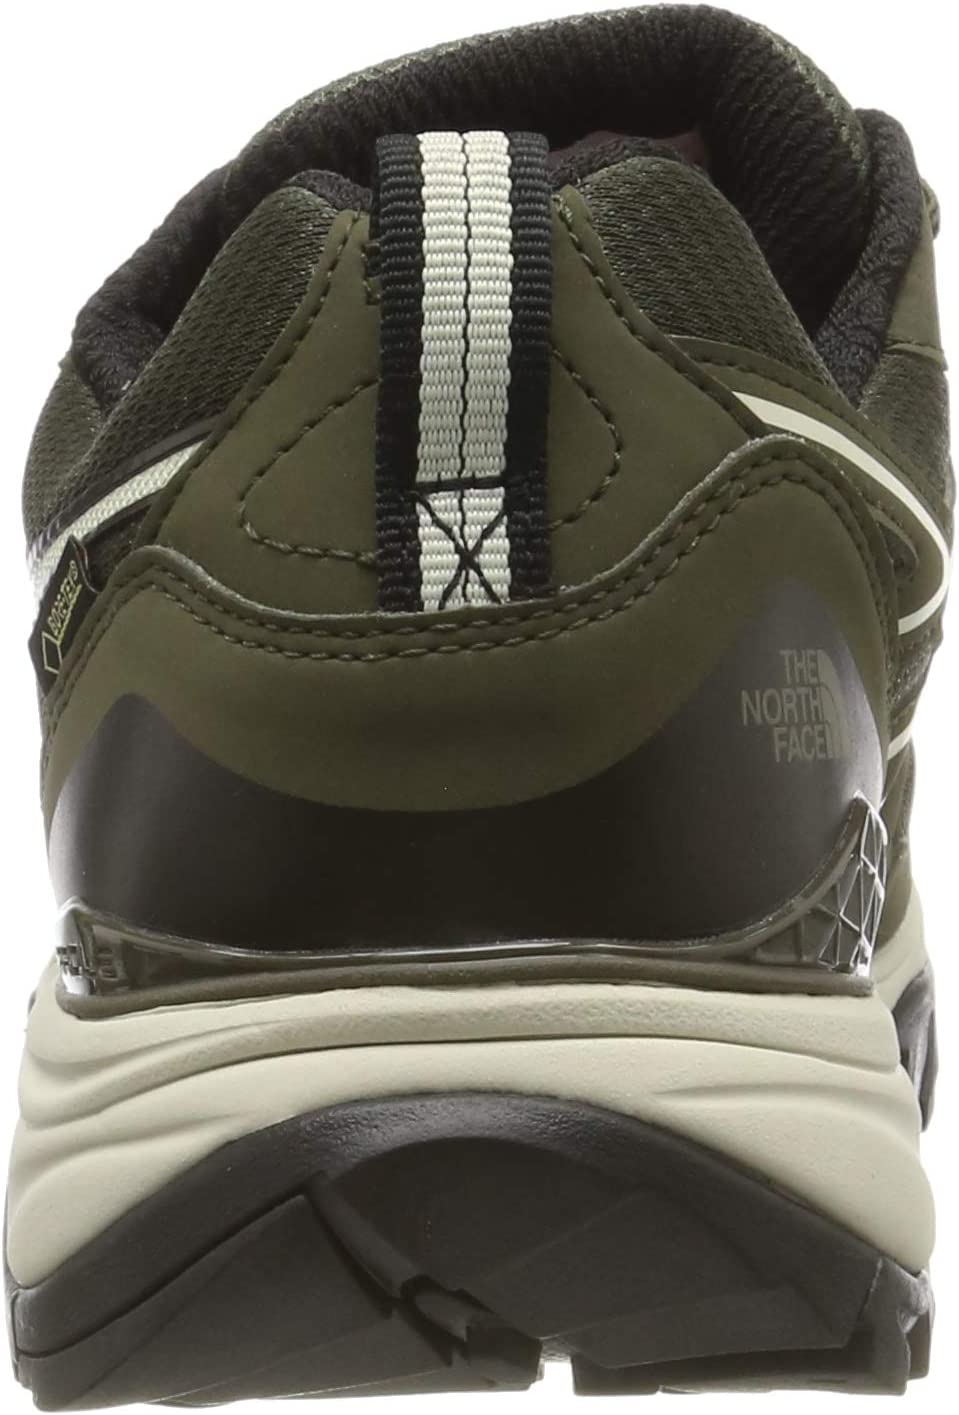 North Face M Hedgehg Fp GTX(EU) Walking Shoes New Taupe Green TNF Black